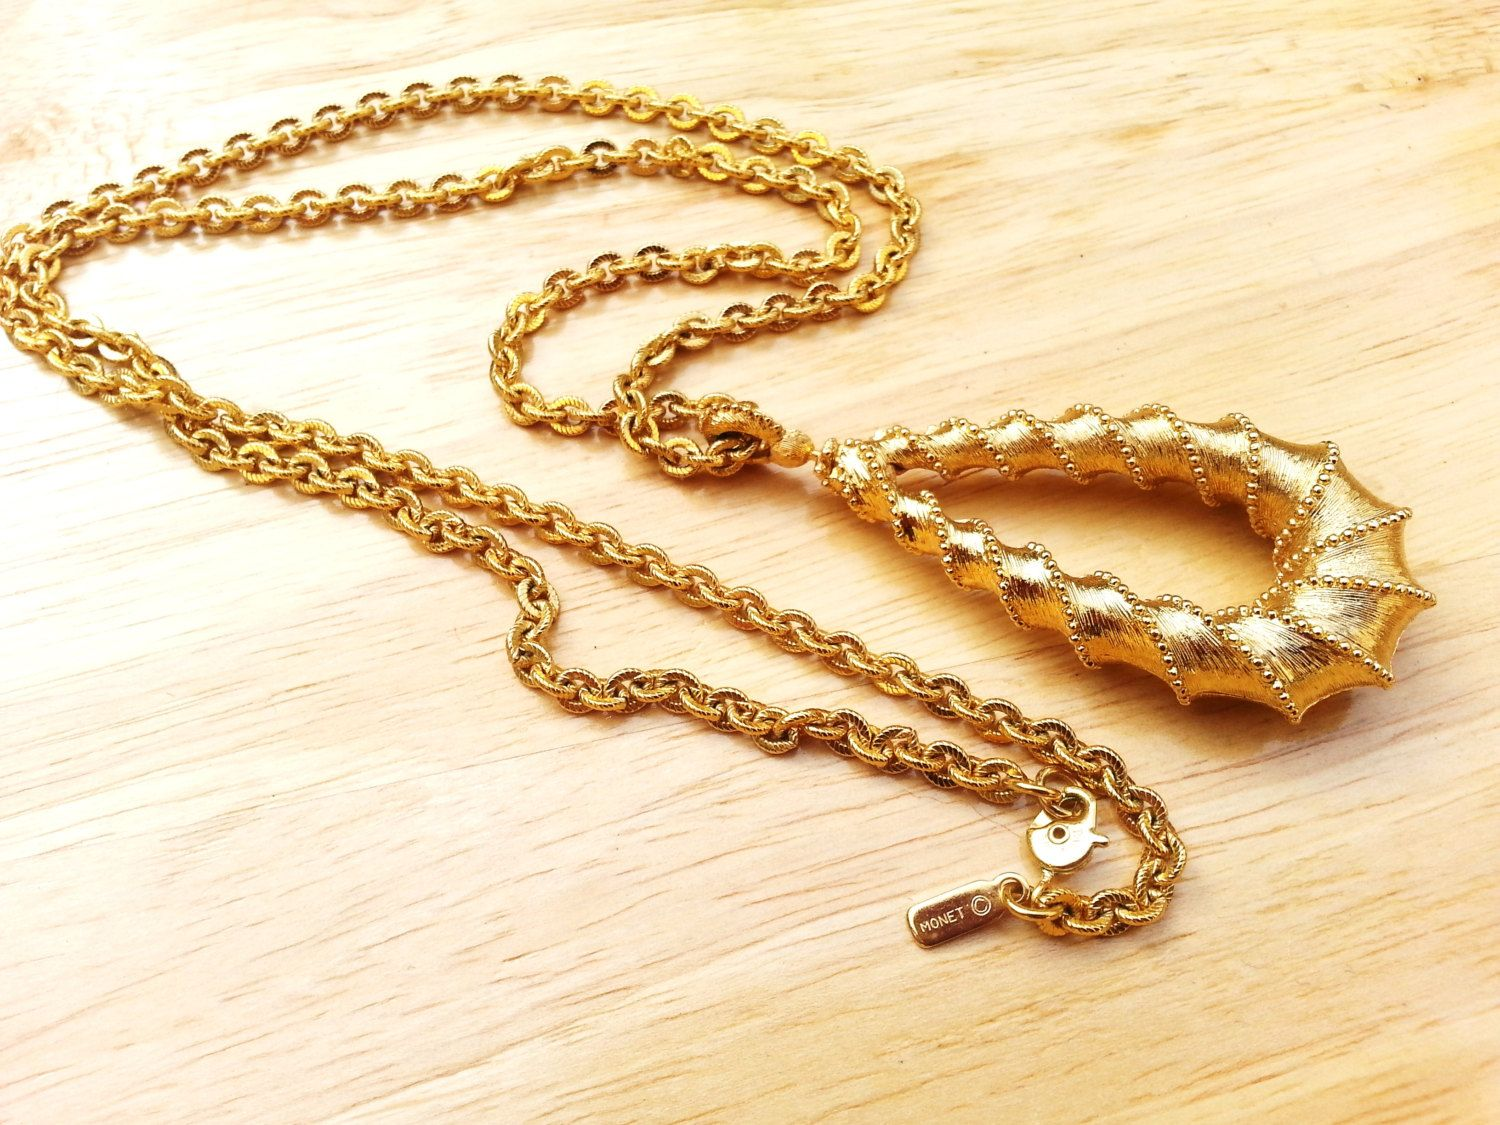 Long 1970s Disco Chain Necklace